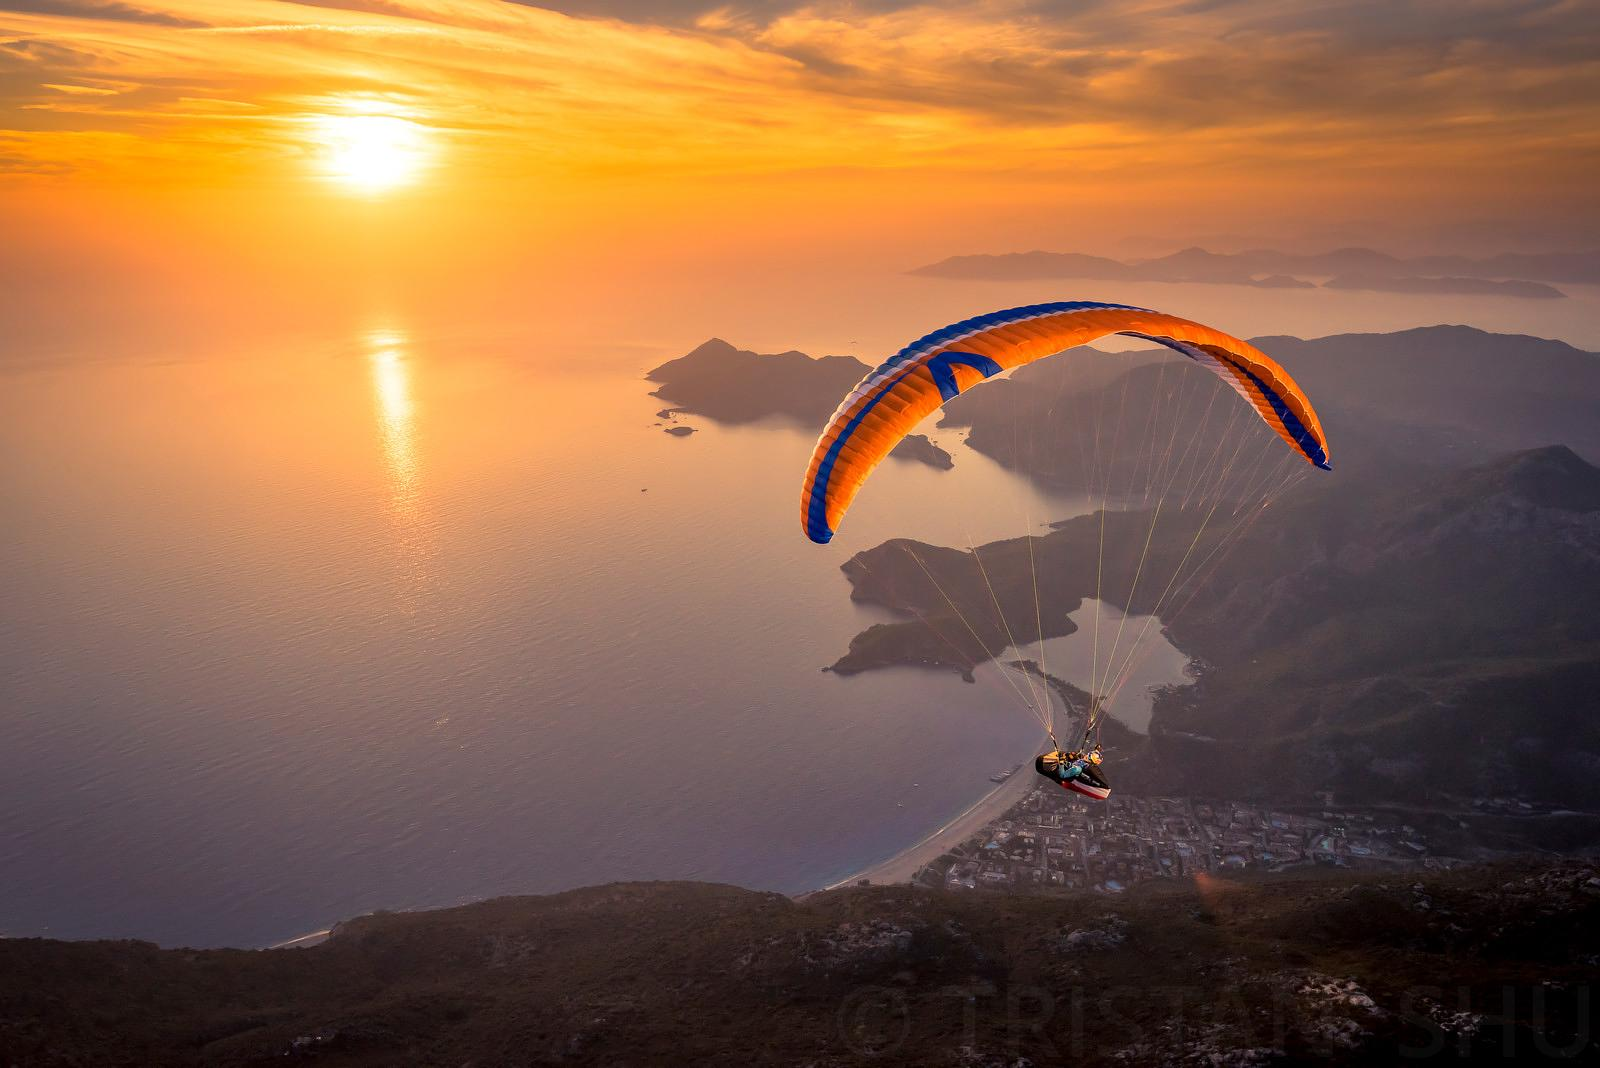 Sunset flying with Paul Guschlbauer